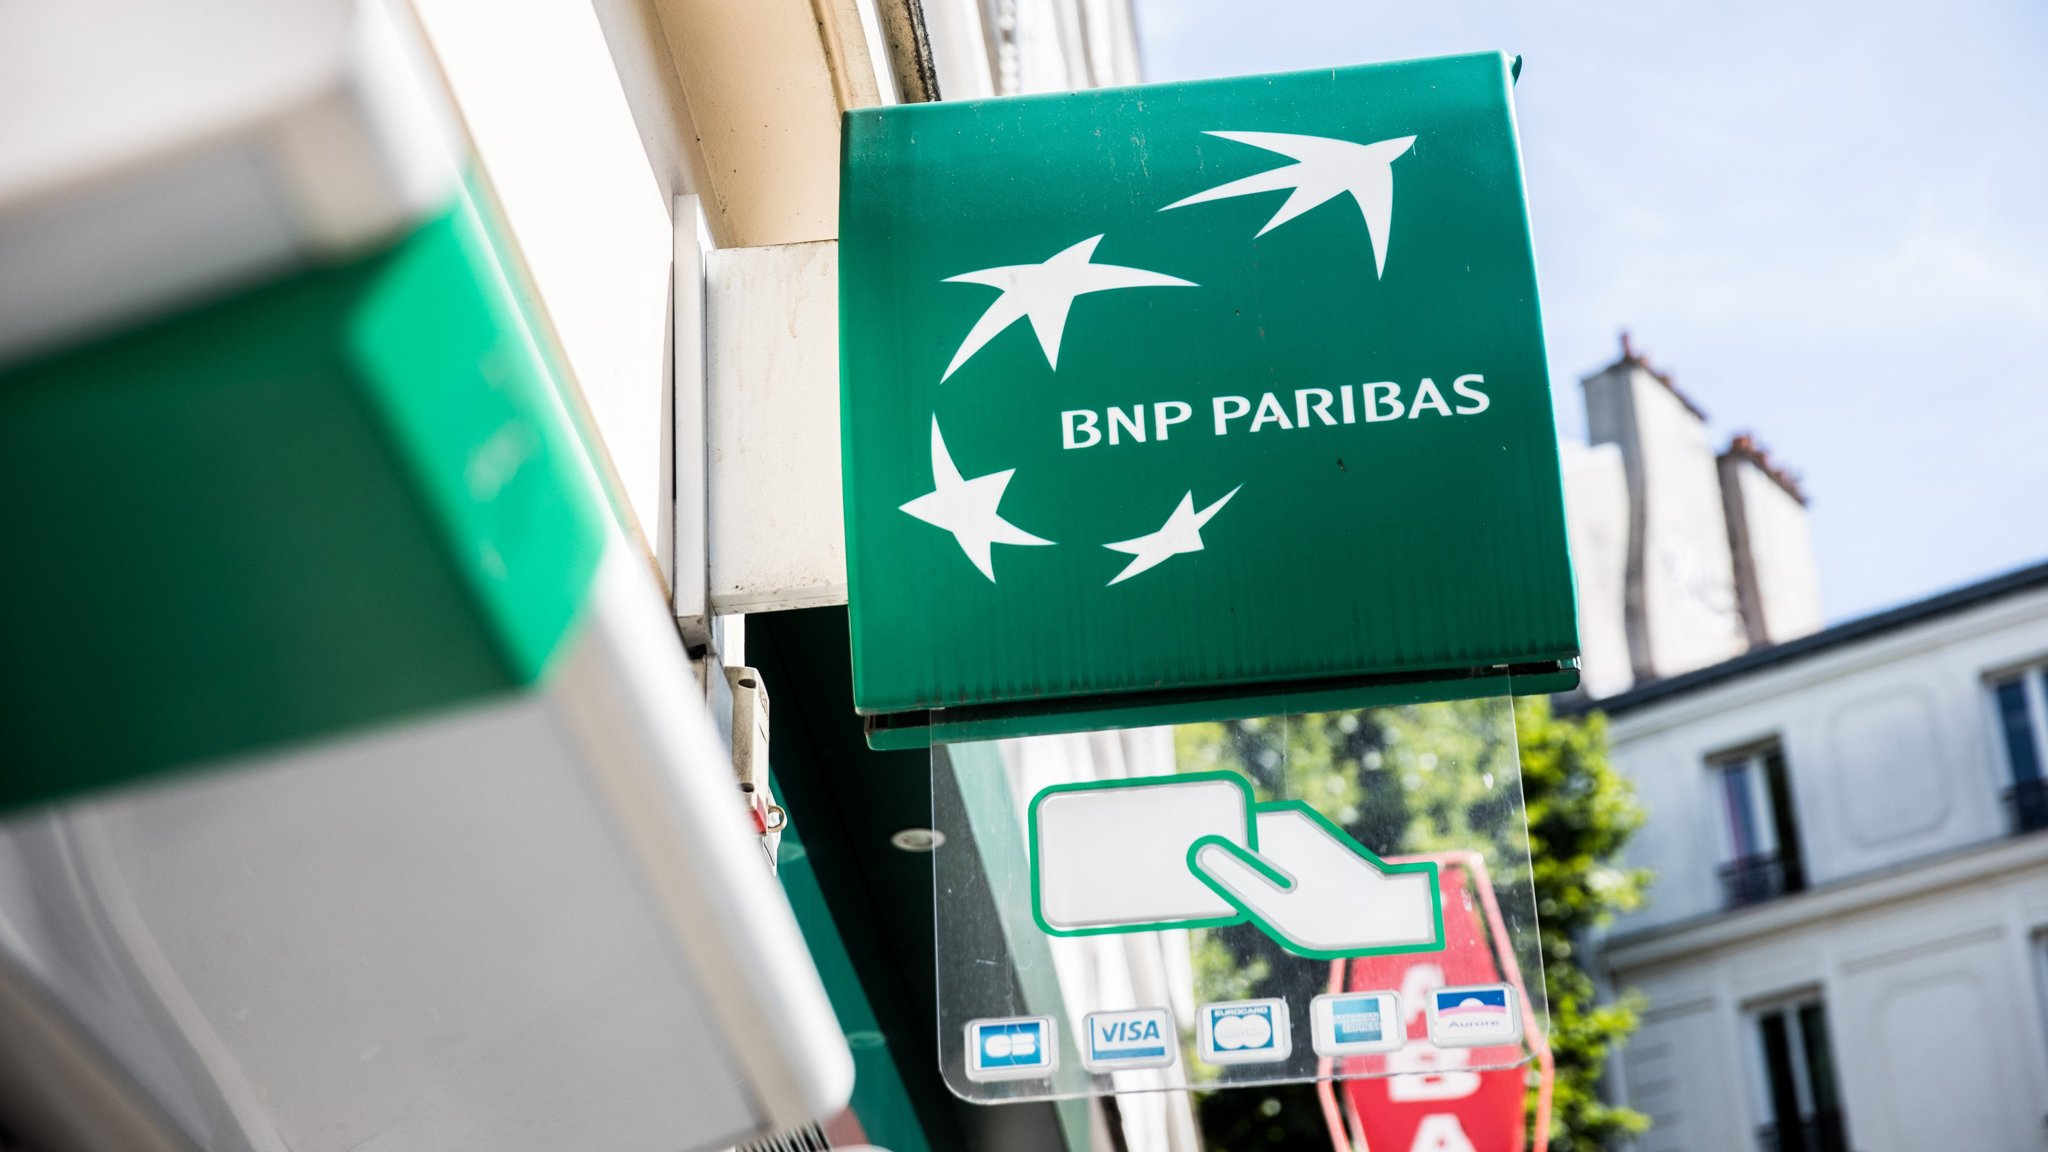 BNP Paribas seizes Brexit opportunity to boost UK operation